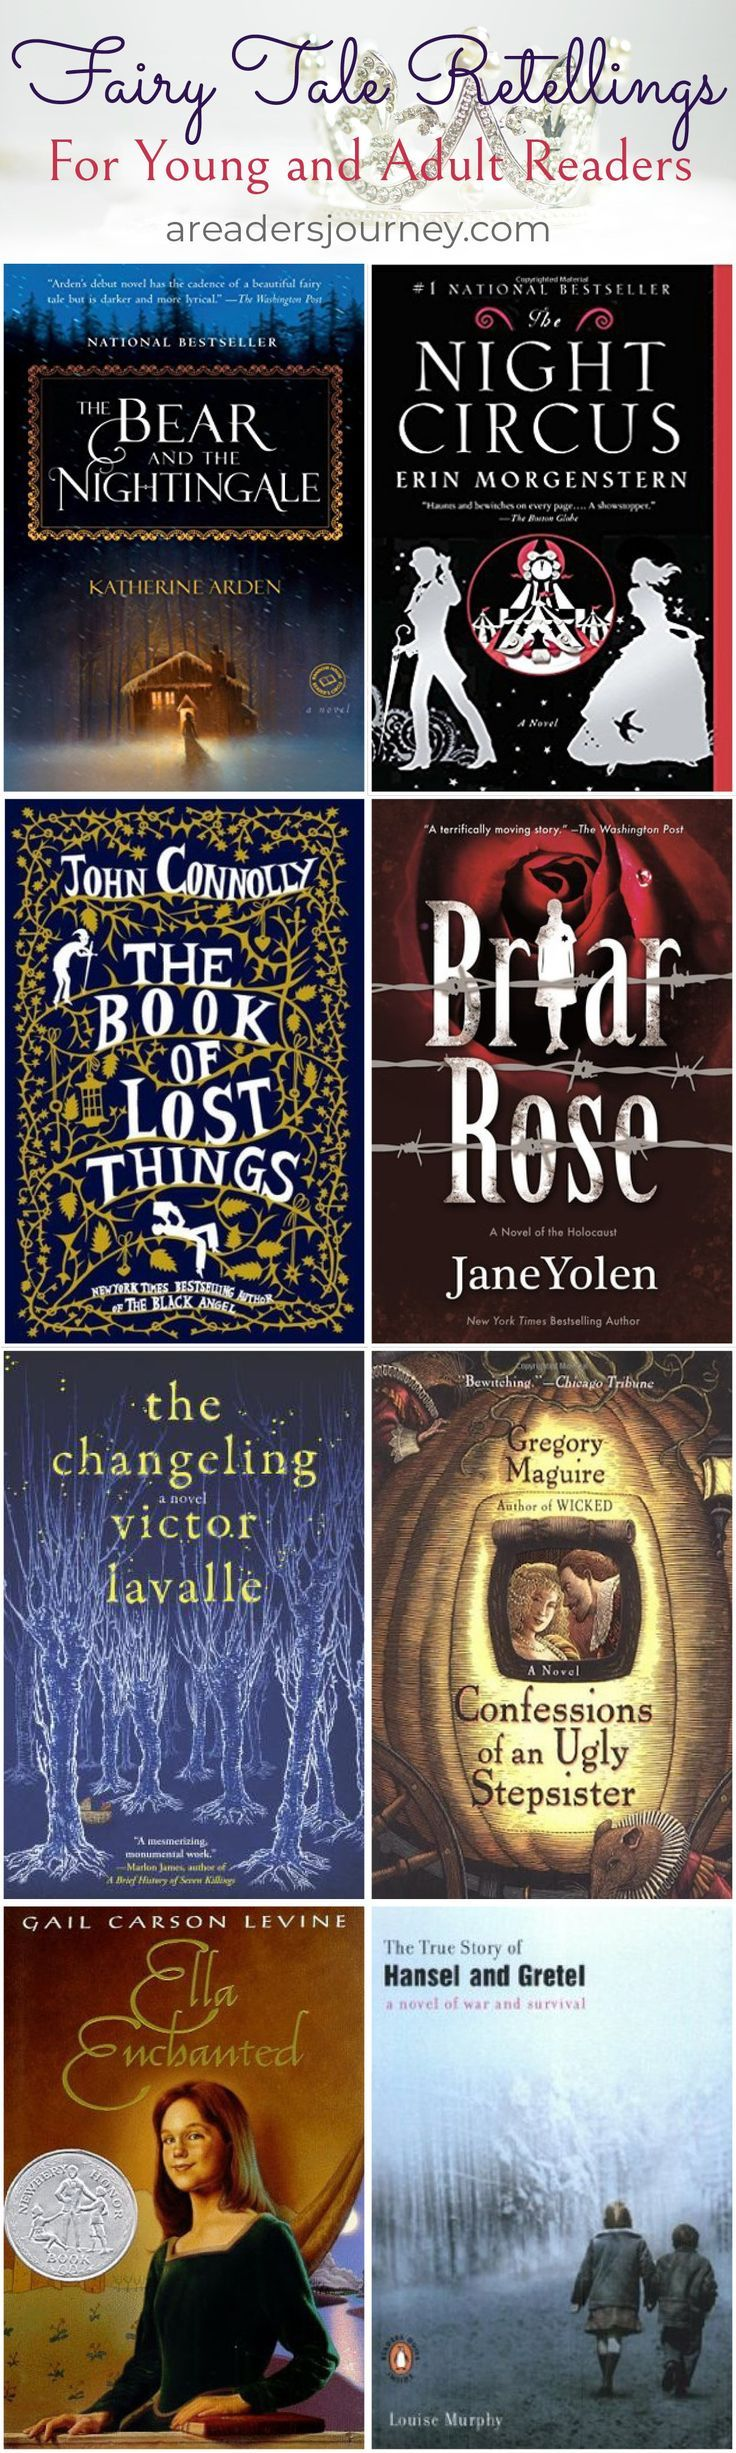 The Brothers Grimm wrote down the most well-known fairy tales in the world. Based on German folklore, these fairy tales are making a comeback in modern literature. These books are only a small portion of the fairy tale inspired modern literature!